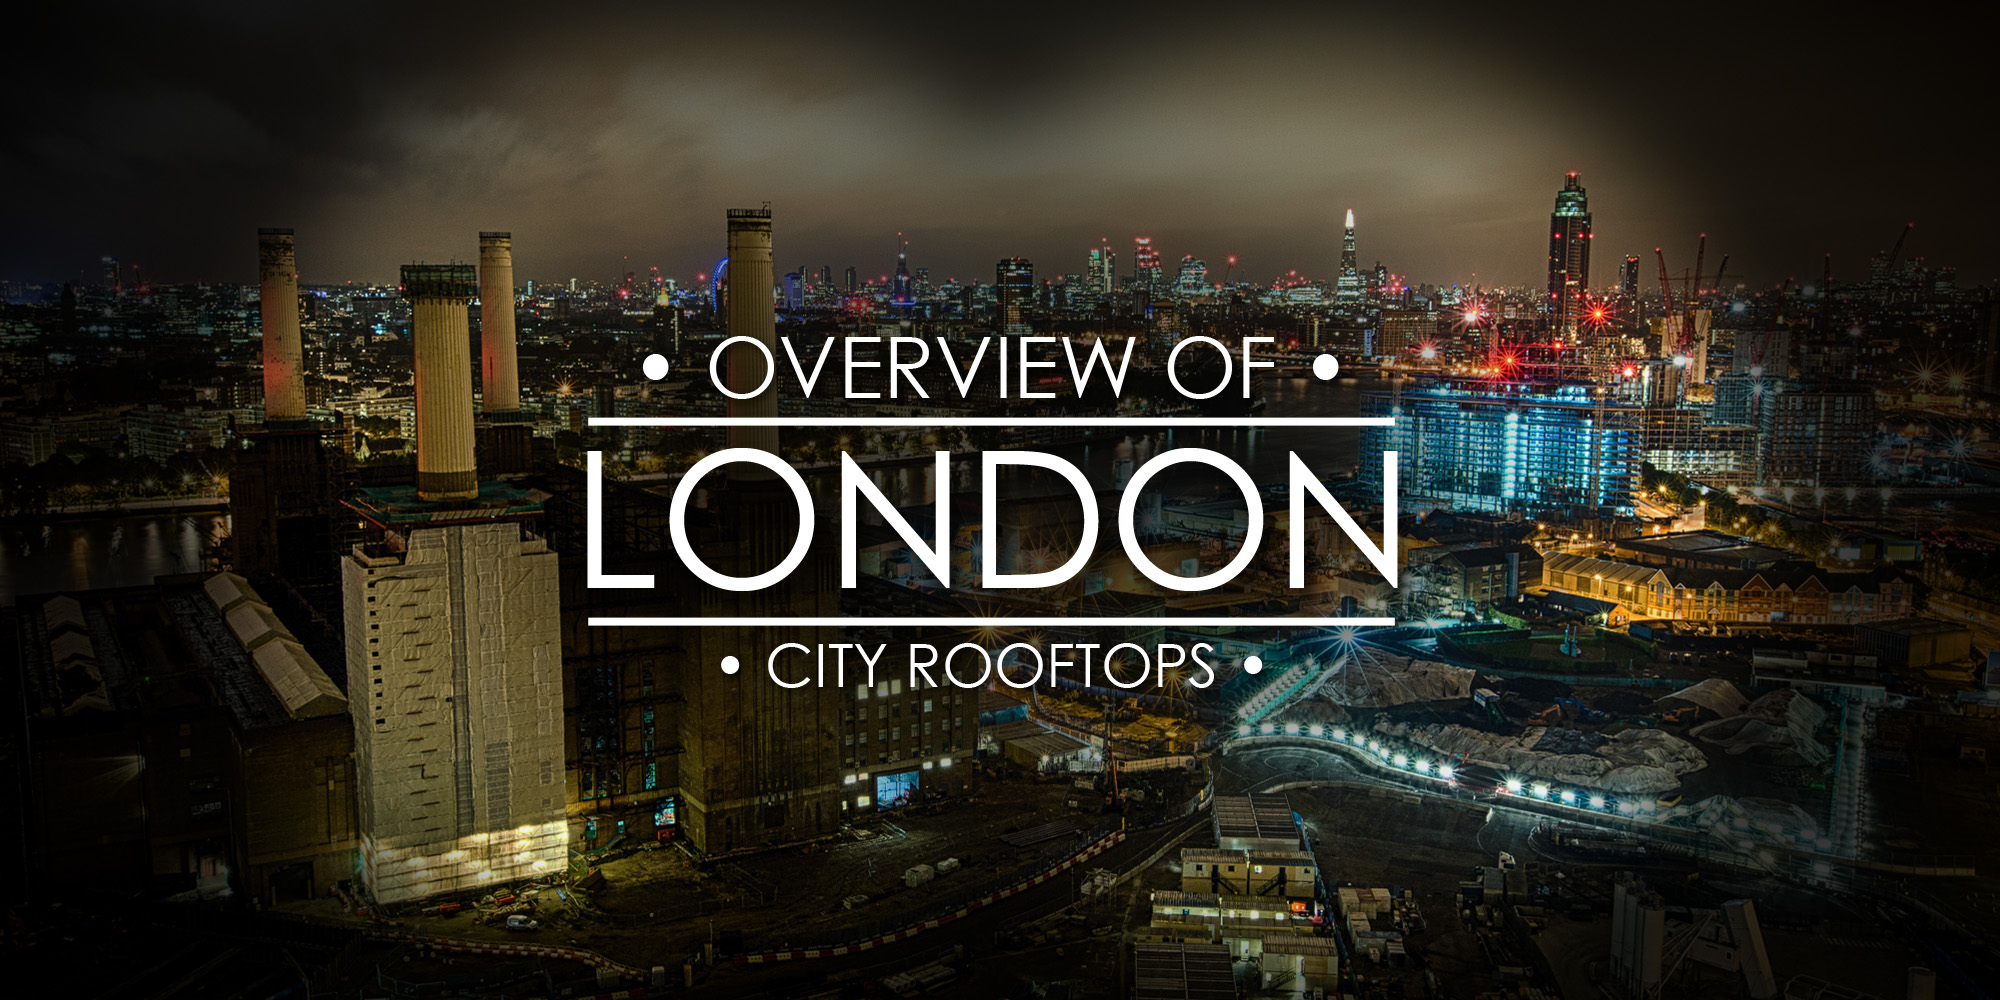 London City Rooftops